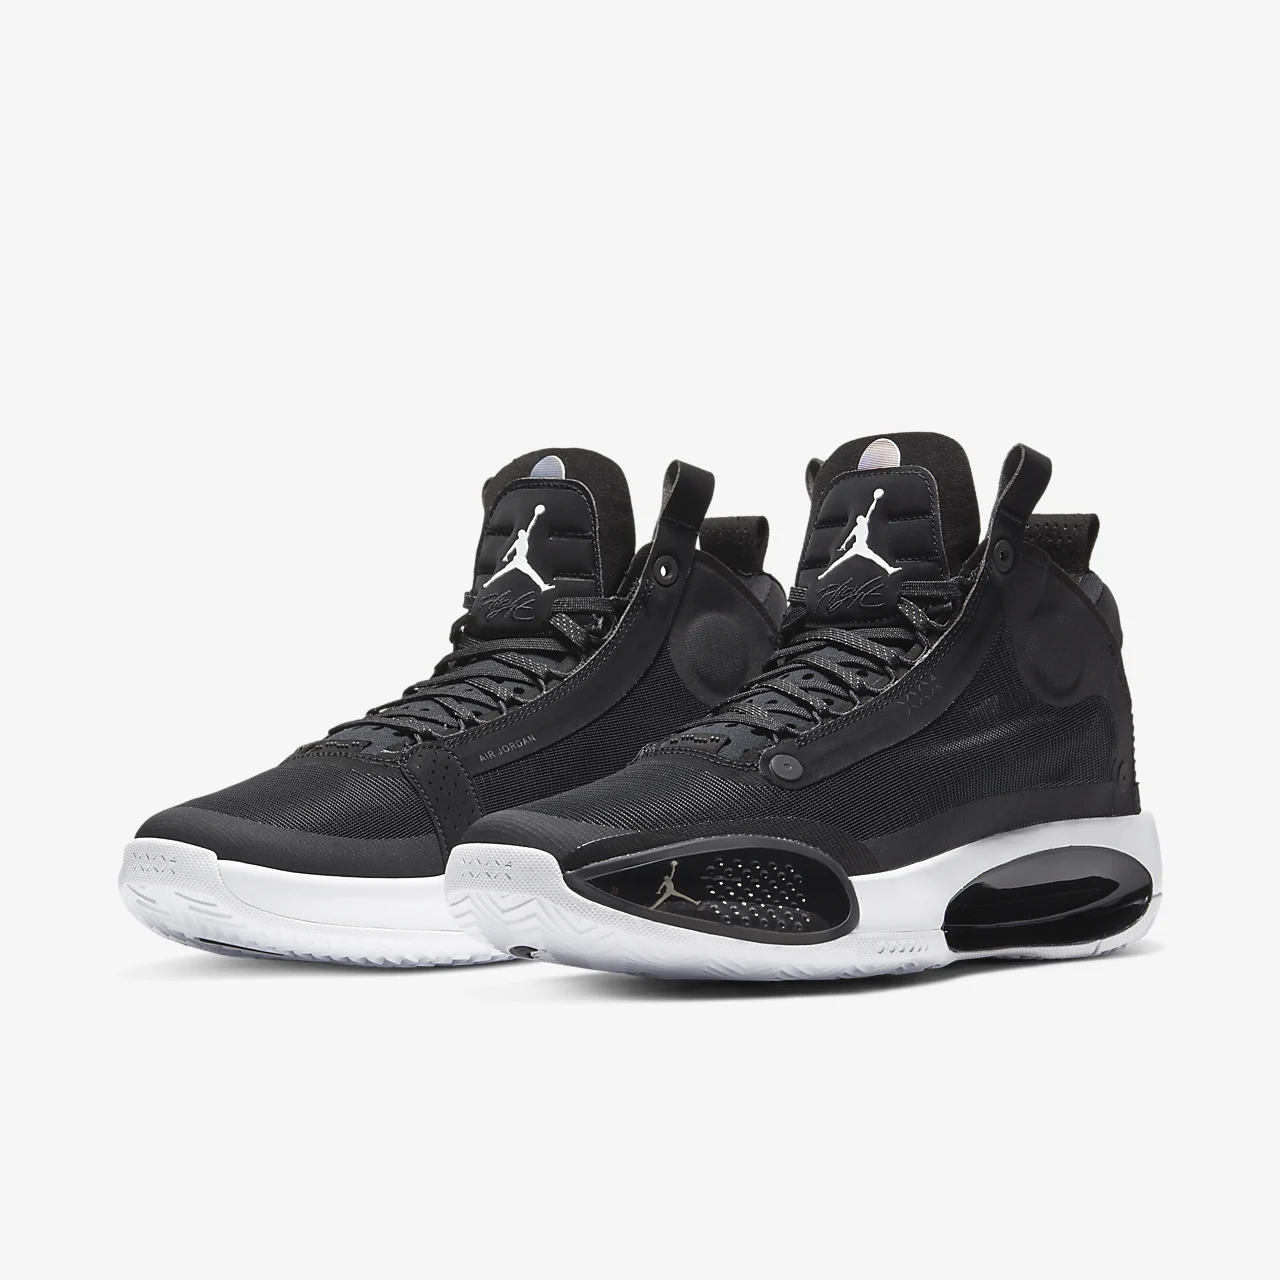 유럽직배송 나이키 NIKE Air Jordan XXXIV Basketball Shoe AR3240-001